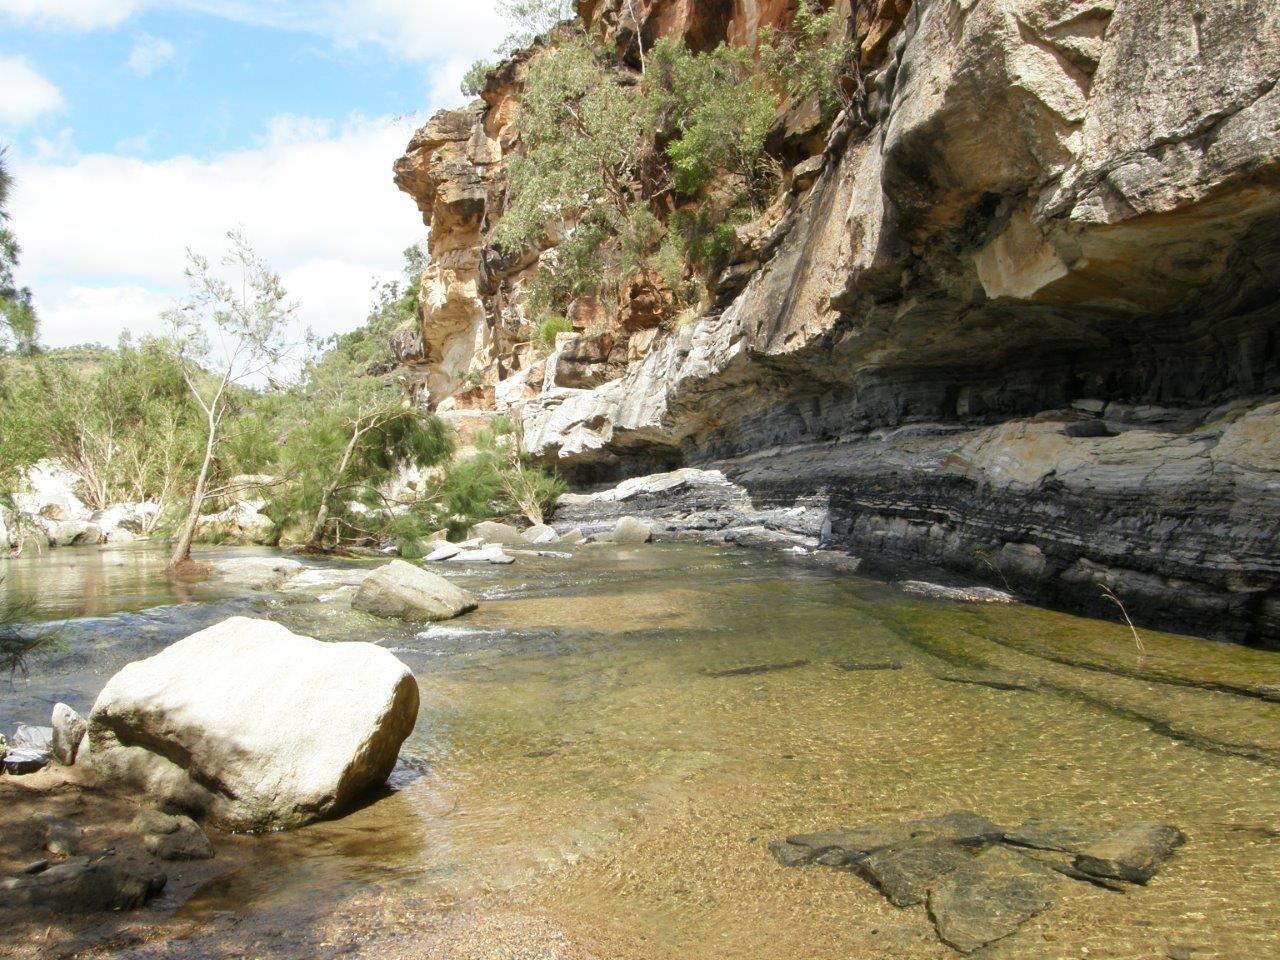 Qld_Hughenden_Porcupine Gorge_Betts Creek Beds Coal seams (3).jpg